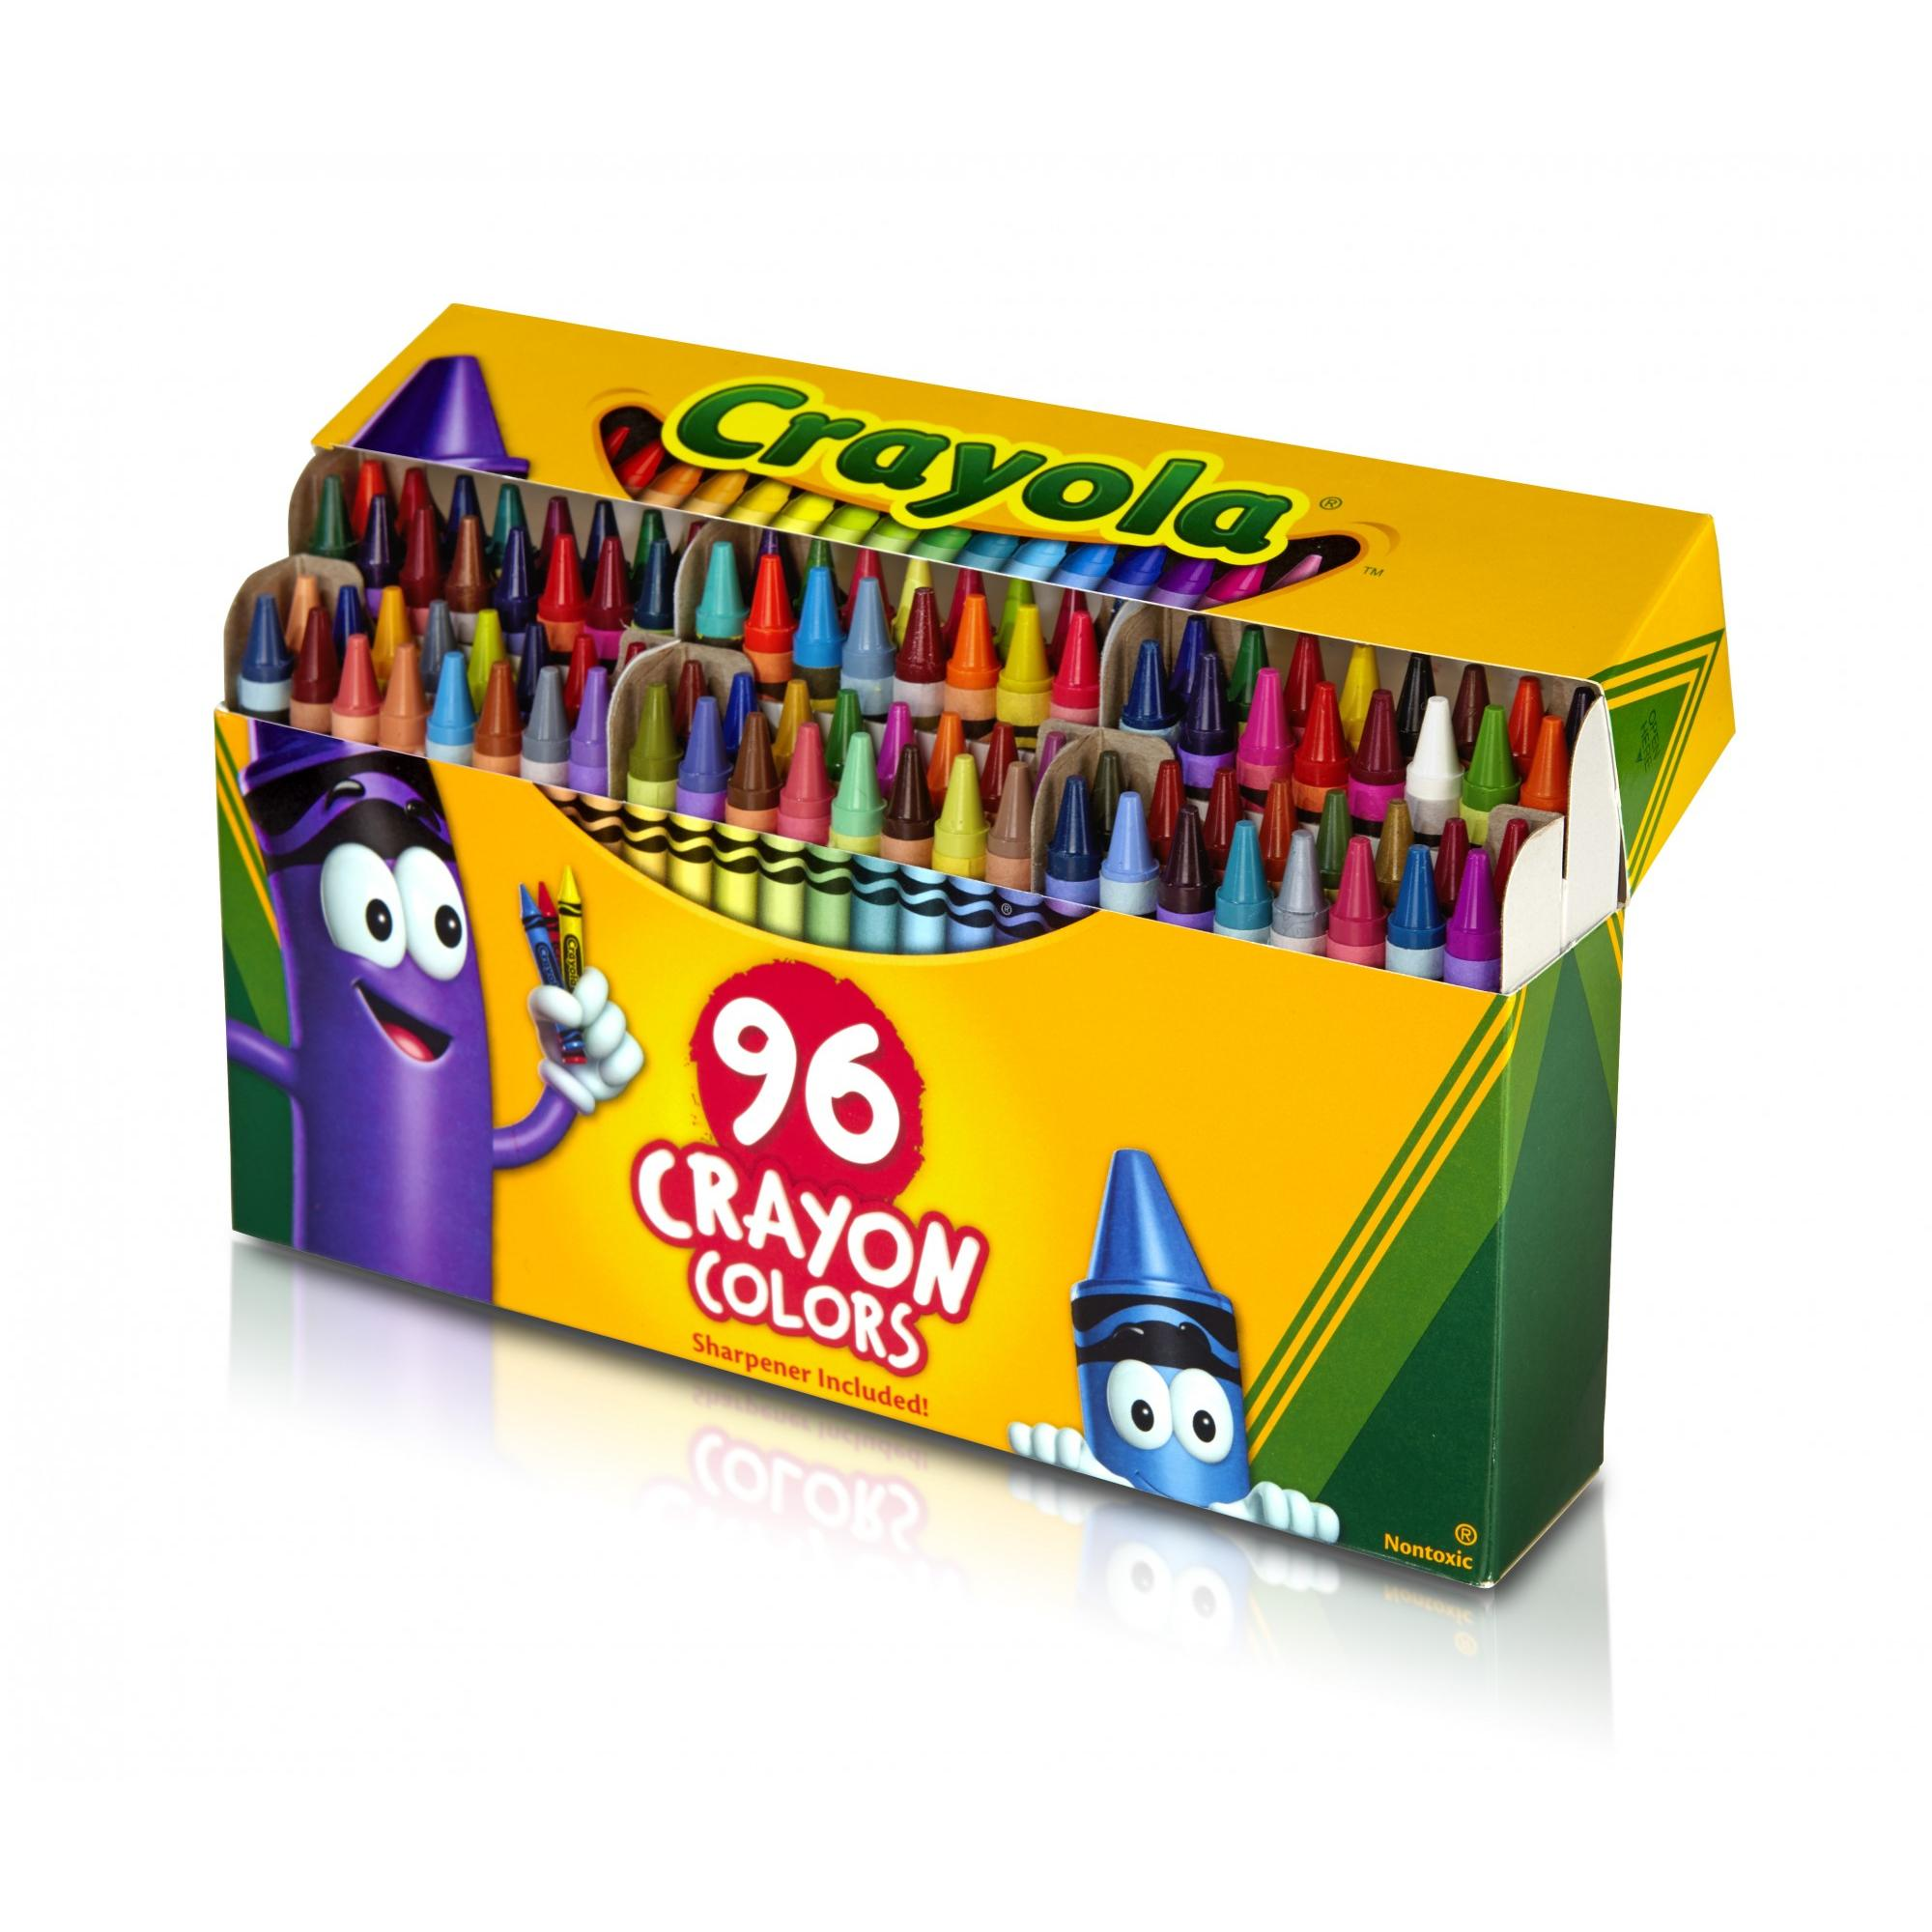 Personalized Address labels Colorful Crayons Buy 3 Get 1 free bo 87